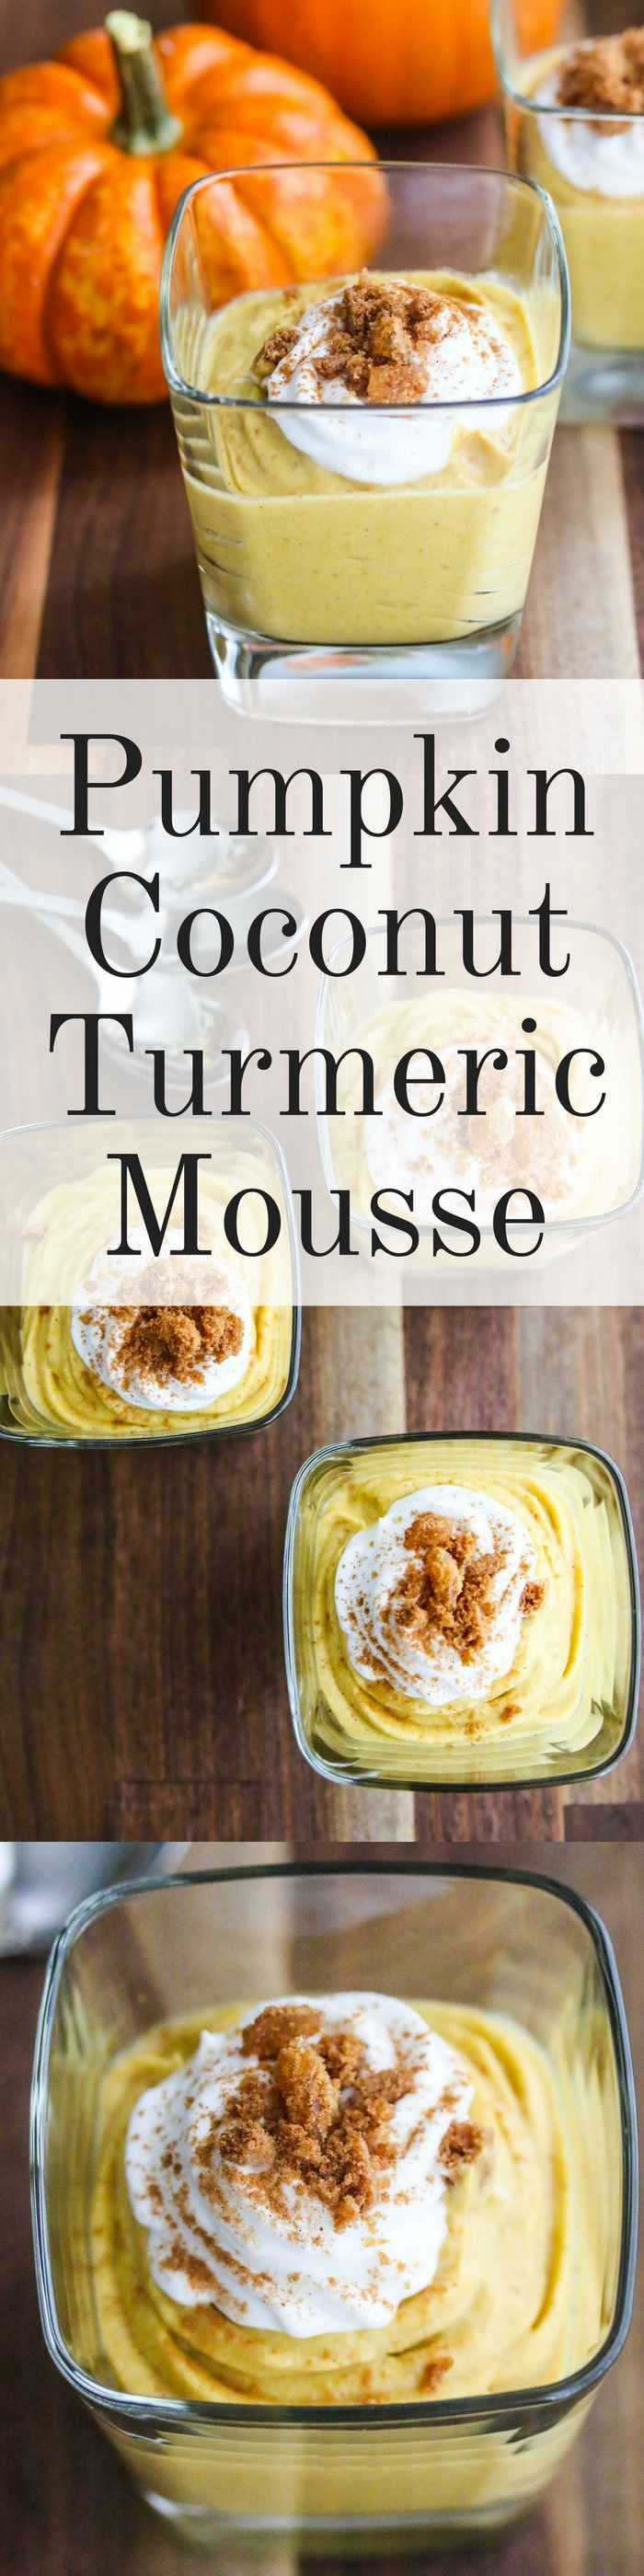 Pumpkin Coconut Turmeric Mousse - this decadently healthy dessert has just 6 ingredients and is so easy to make ~ http://jeanetteshealthyliving.com